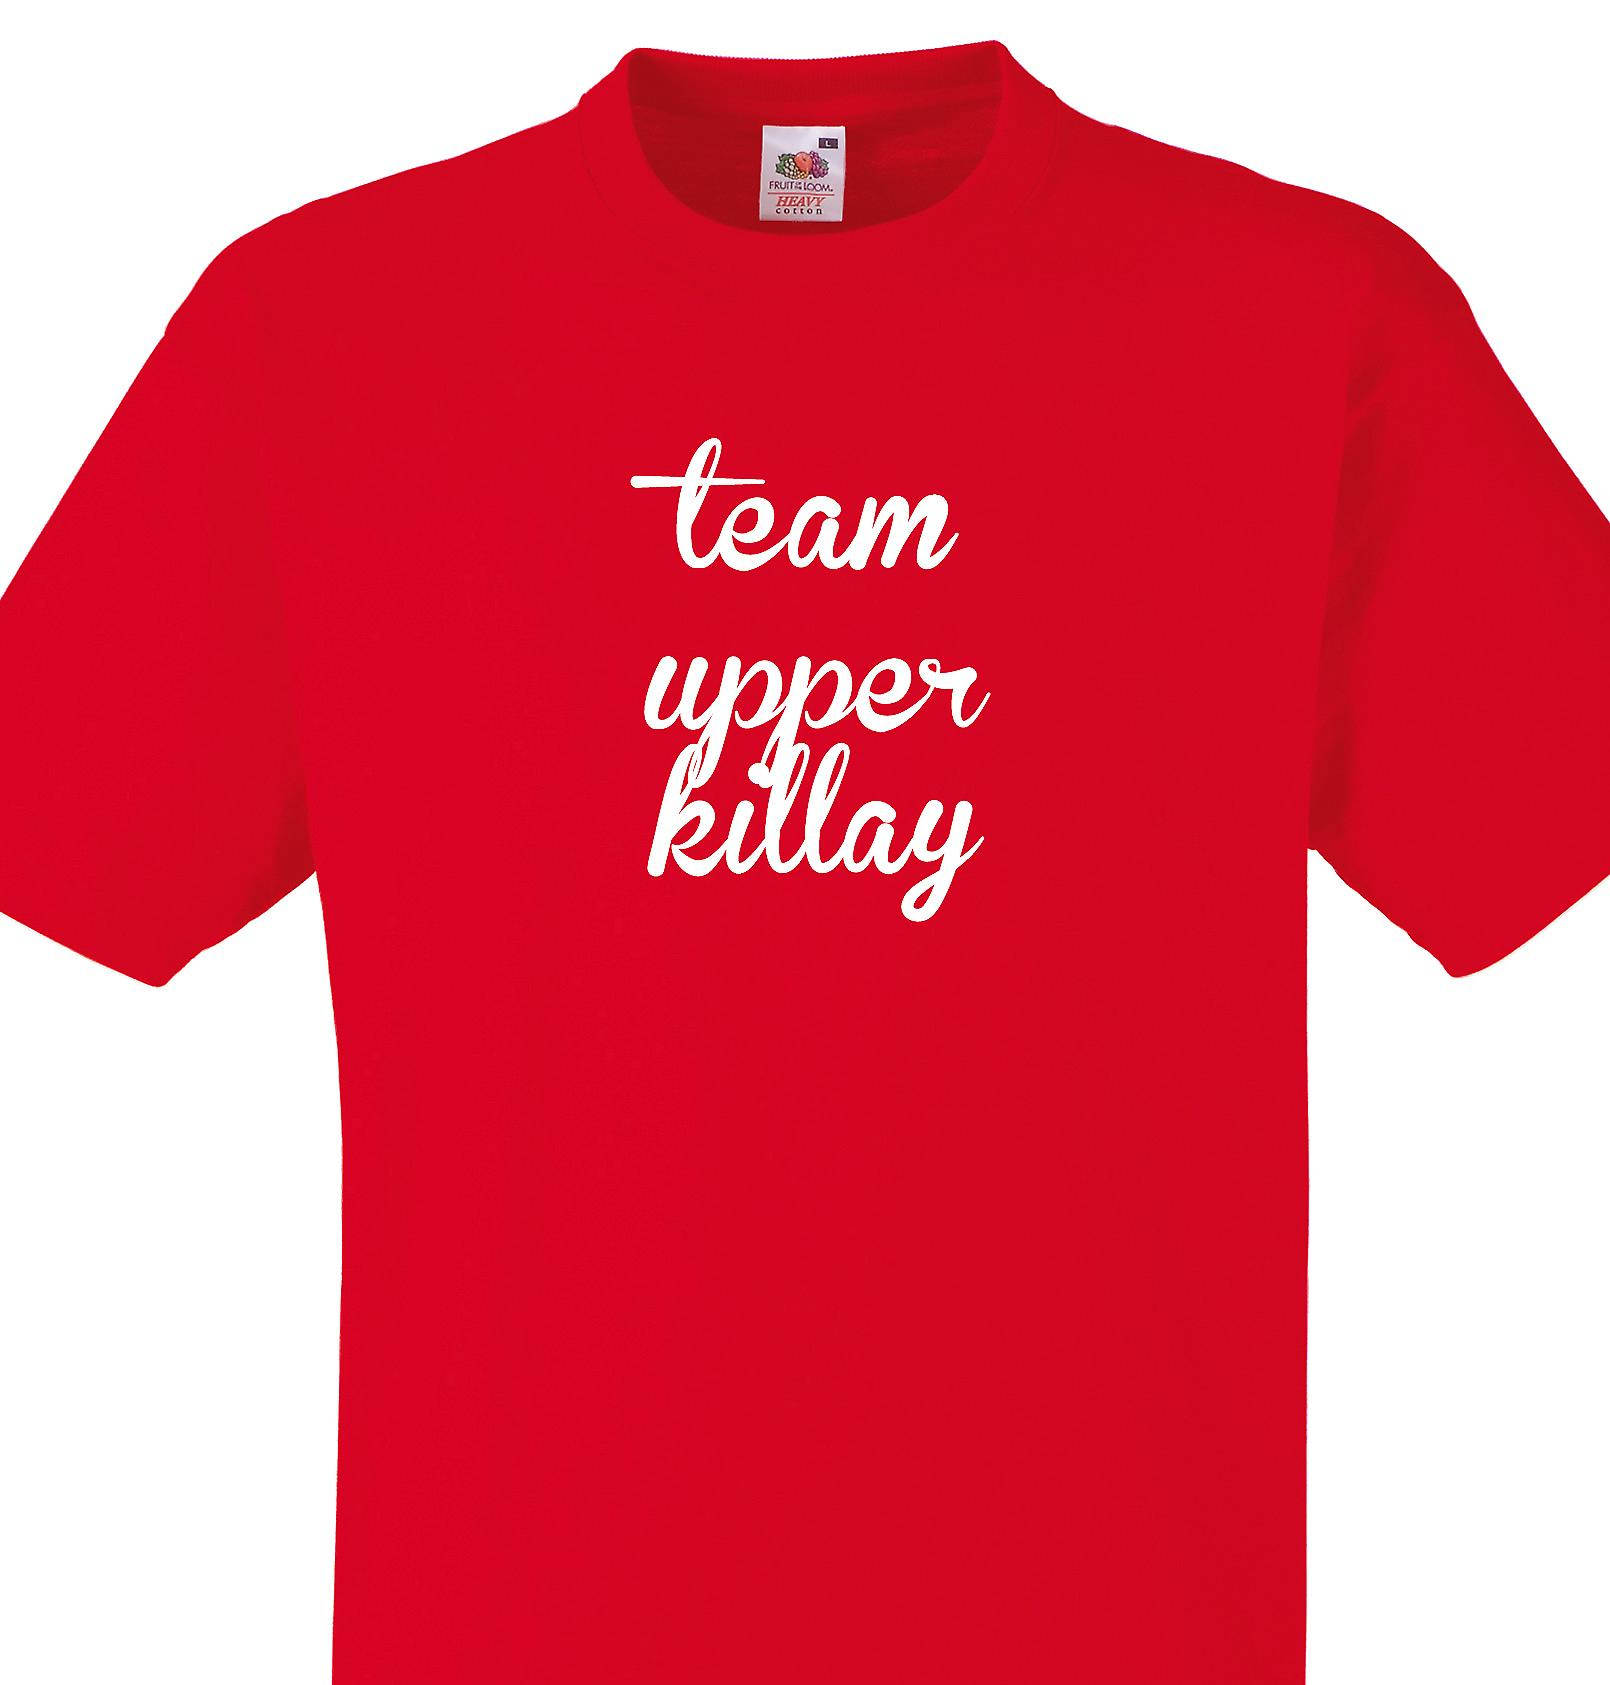 Team Upper killay Red T shirt